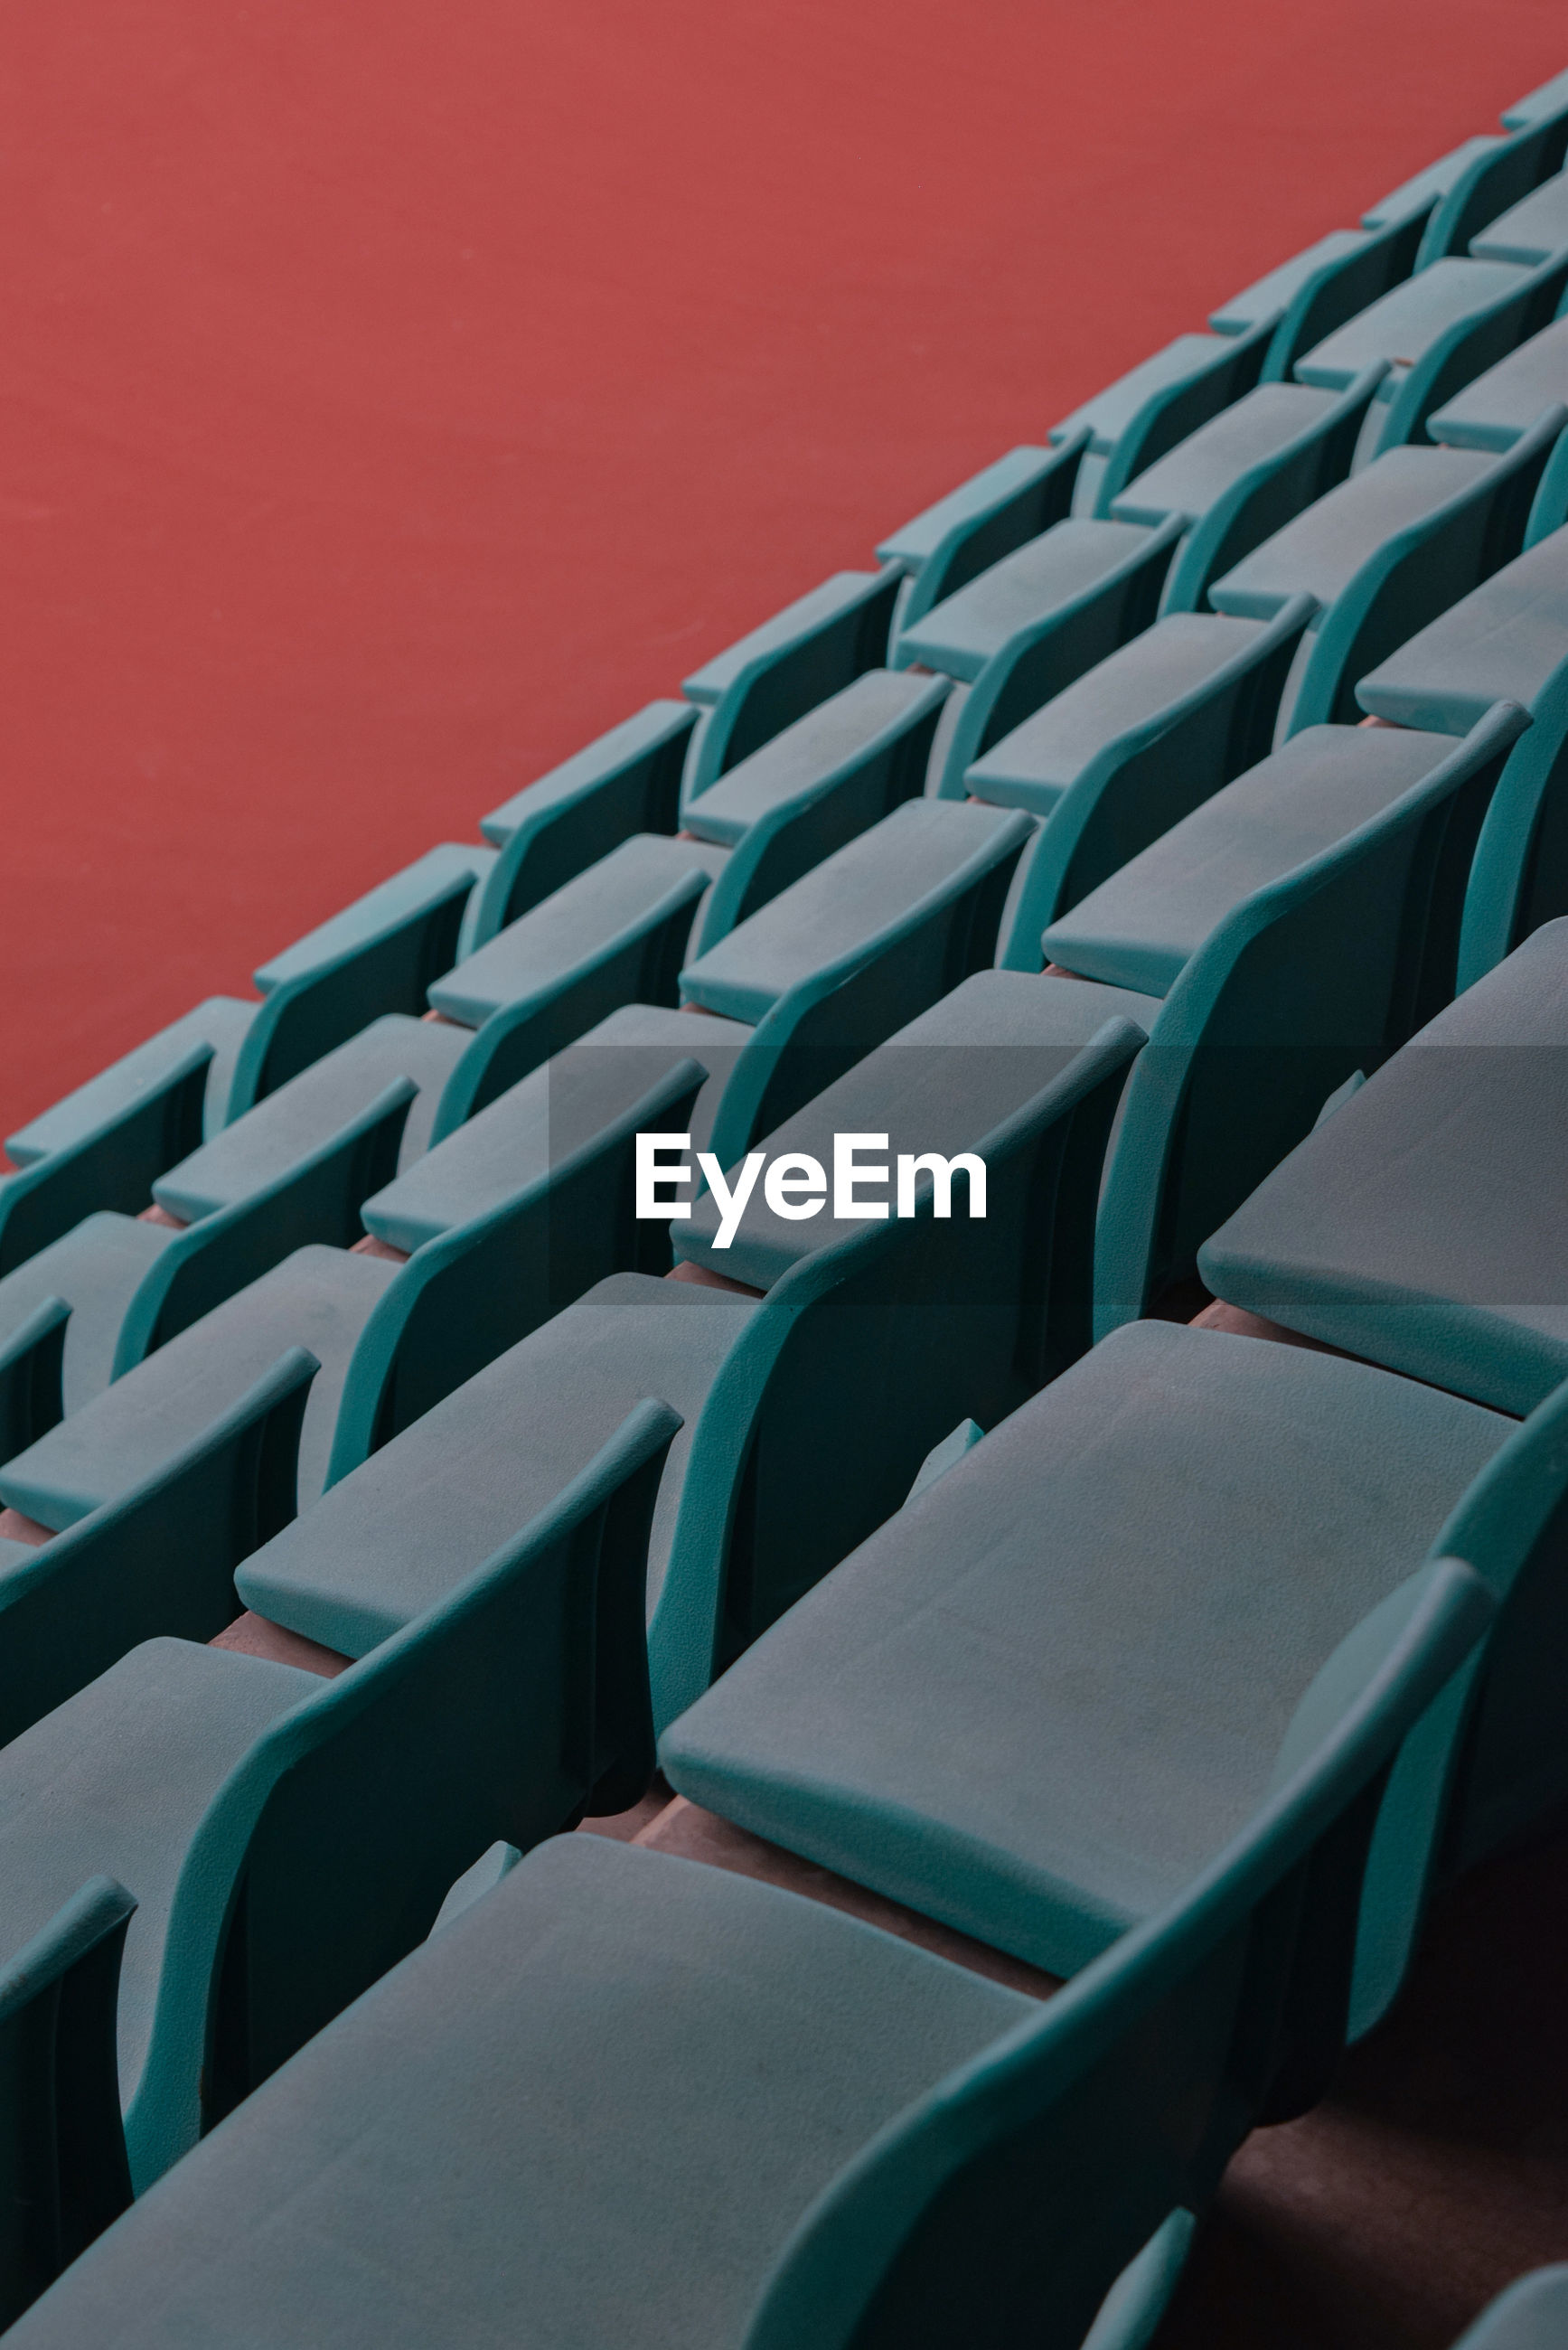 Empty seats in a row